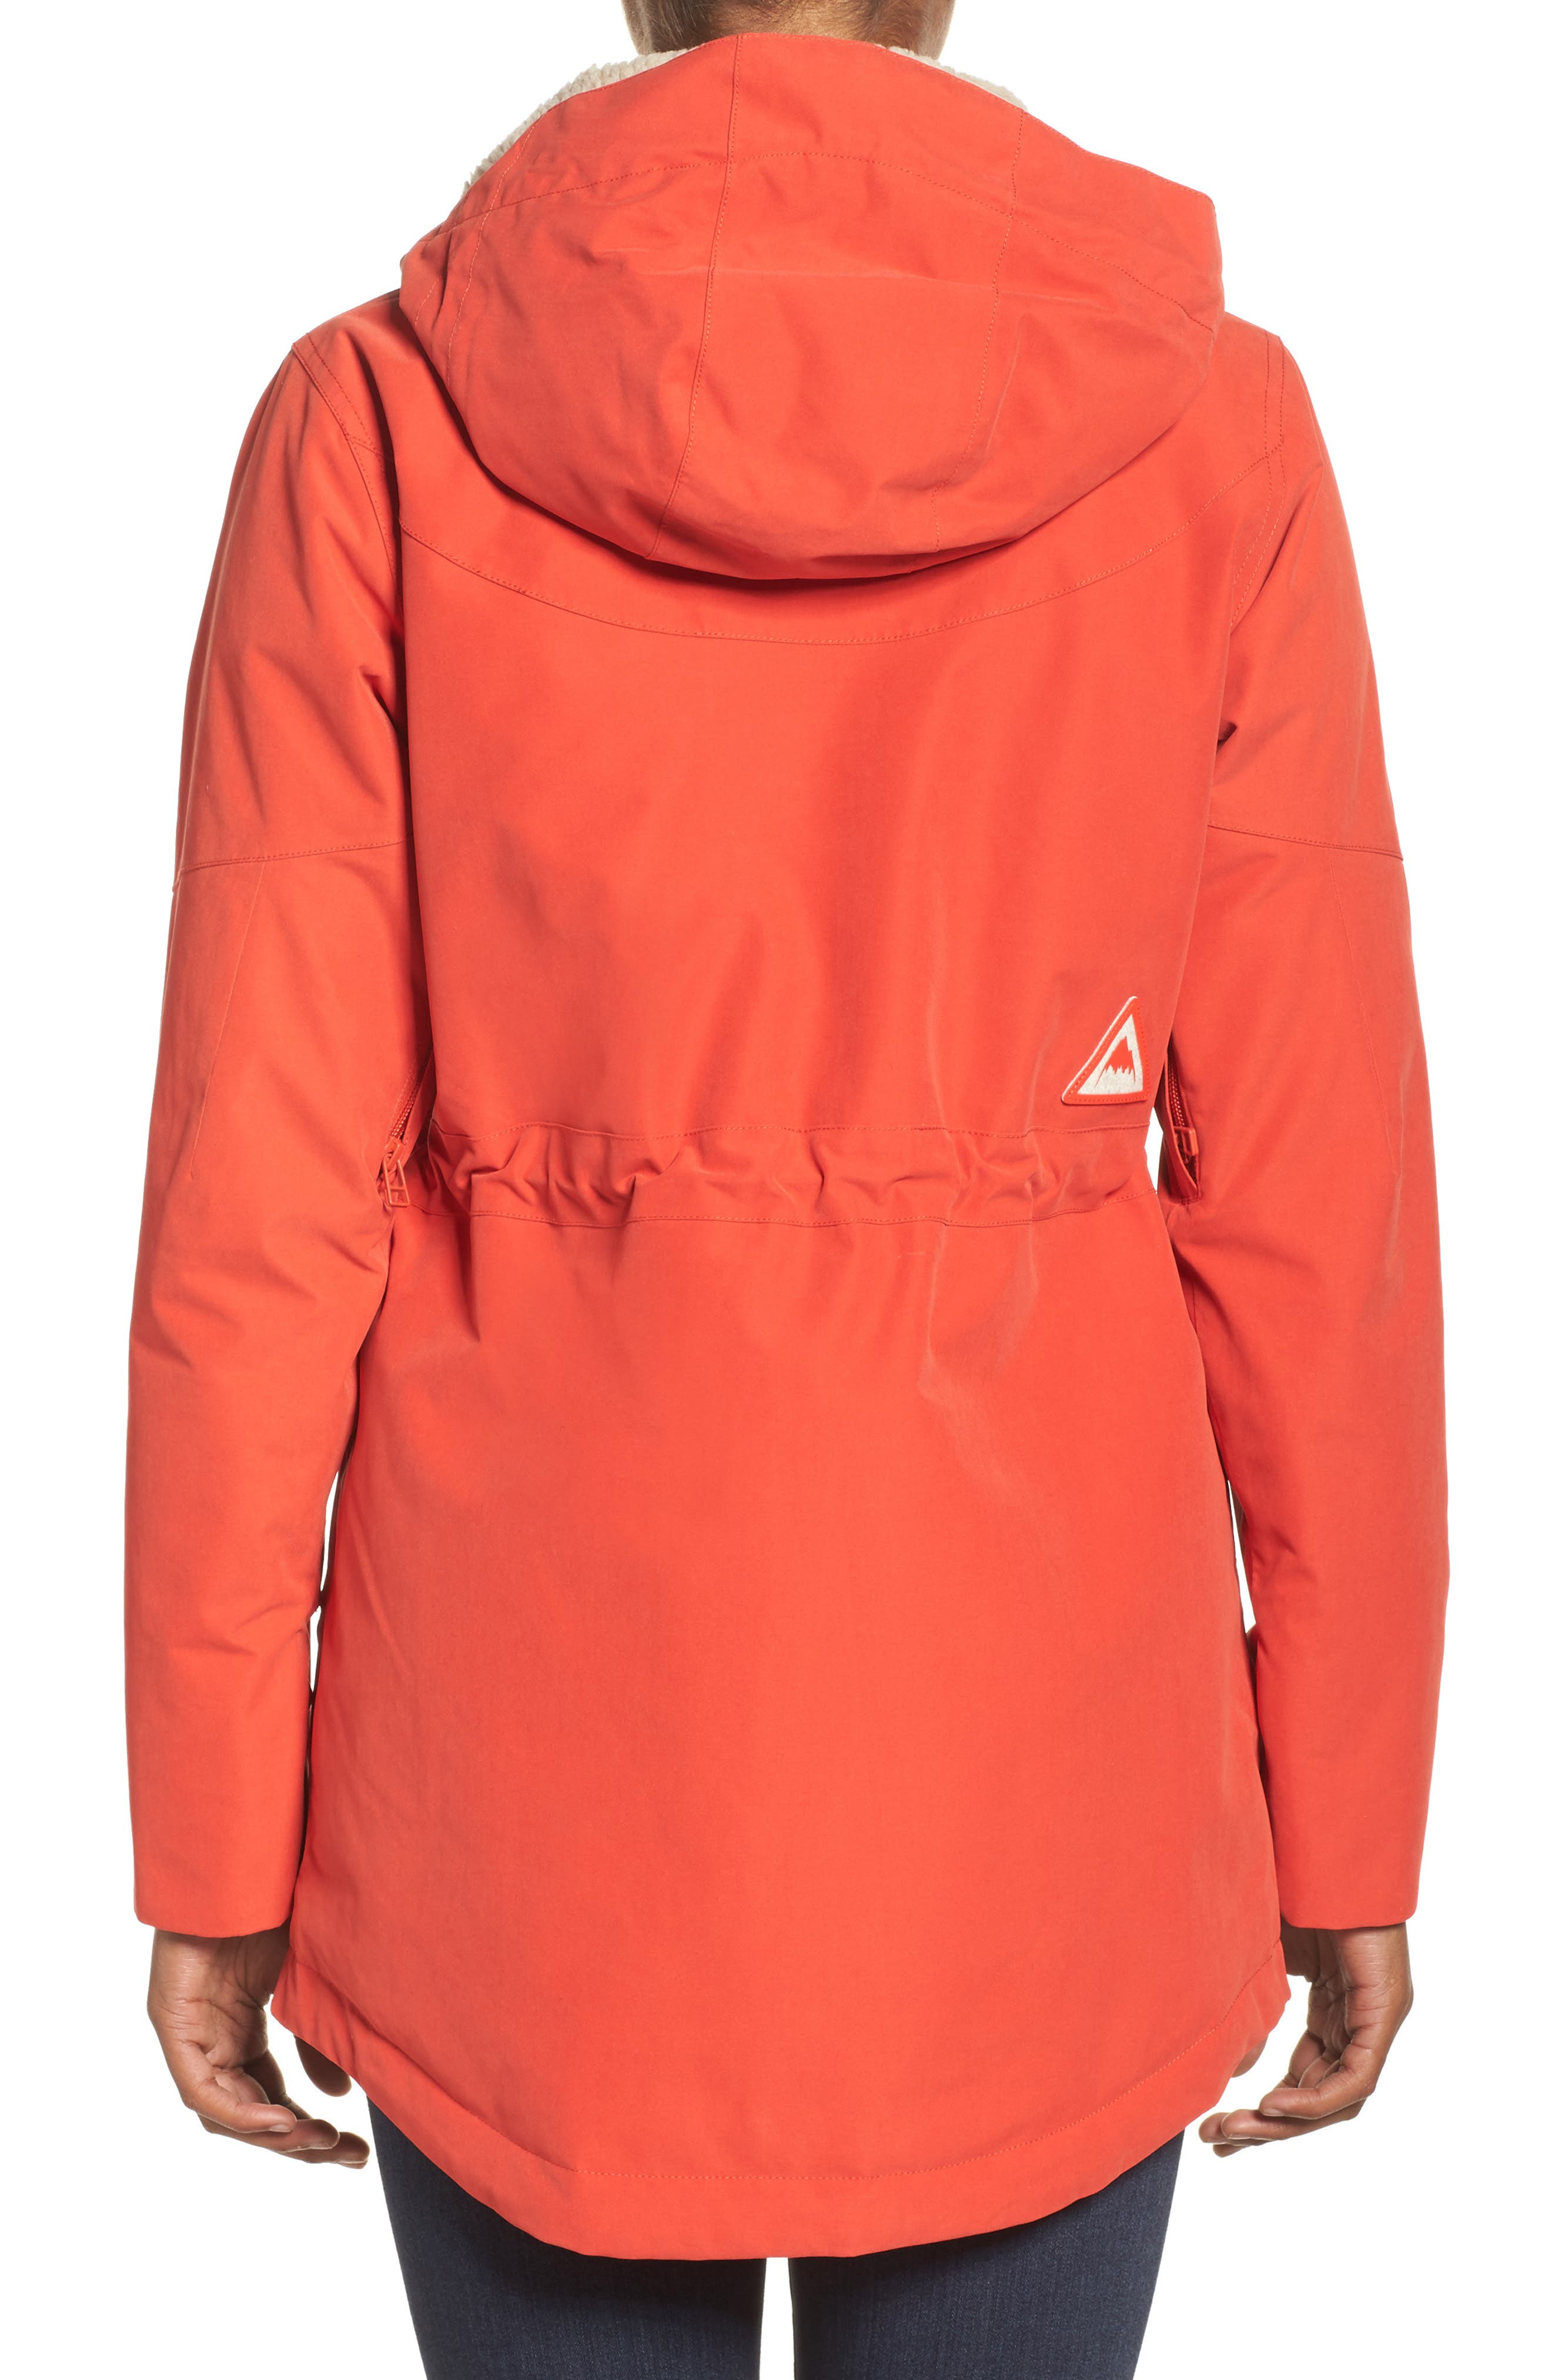 Prowess Fleece Lined Water Resistant Jacket,                             Alternate thumbnail 2, color,                             FIERY RED SUEDED